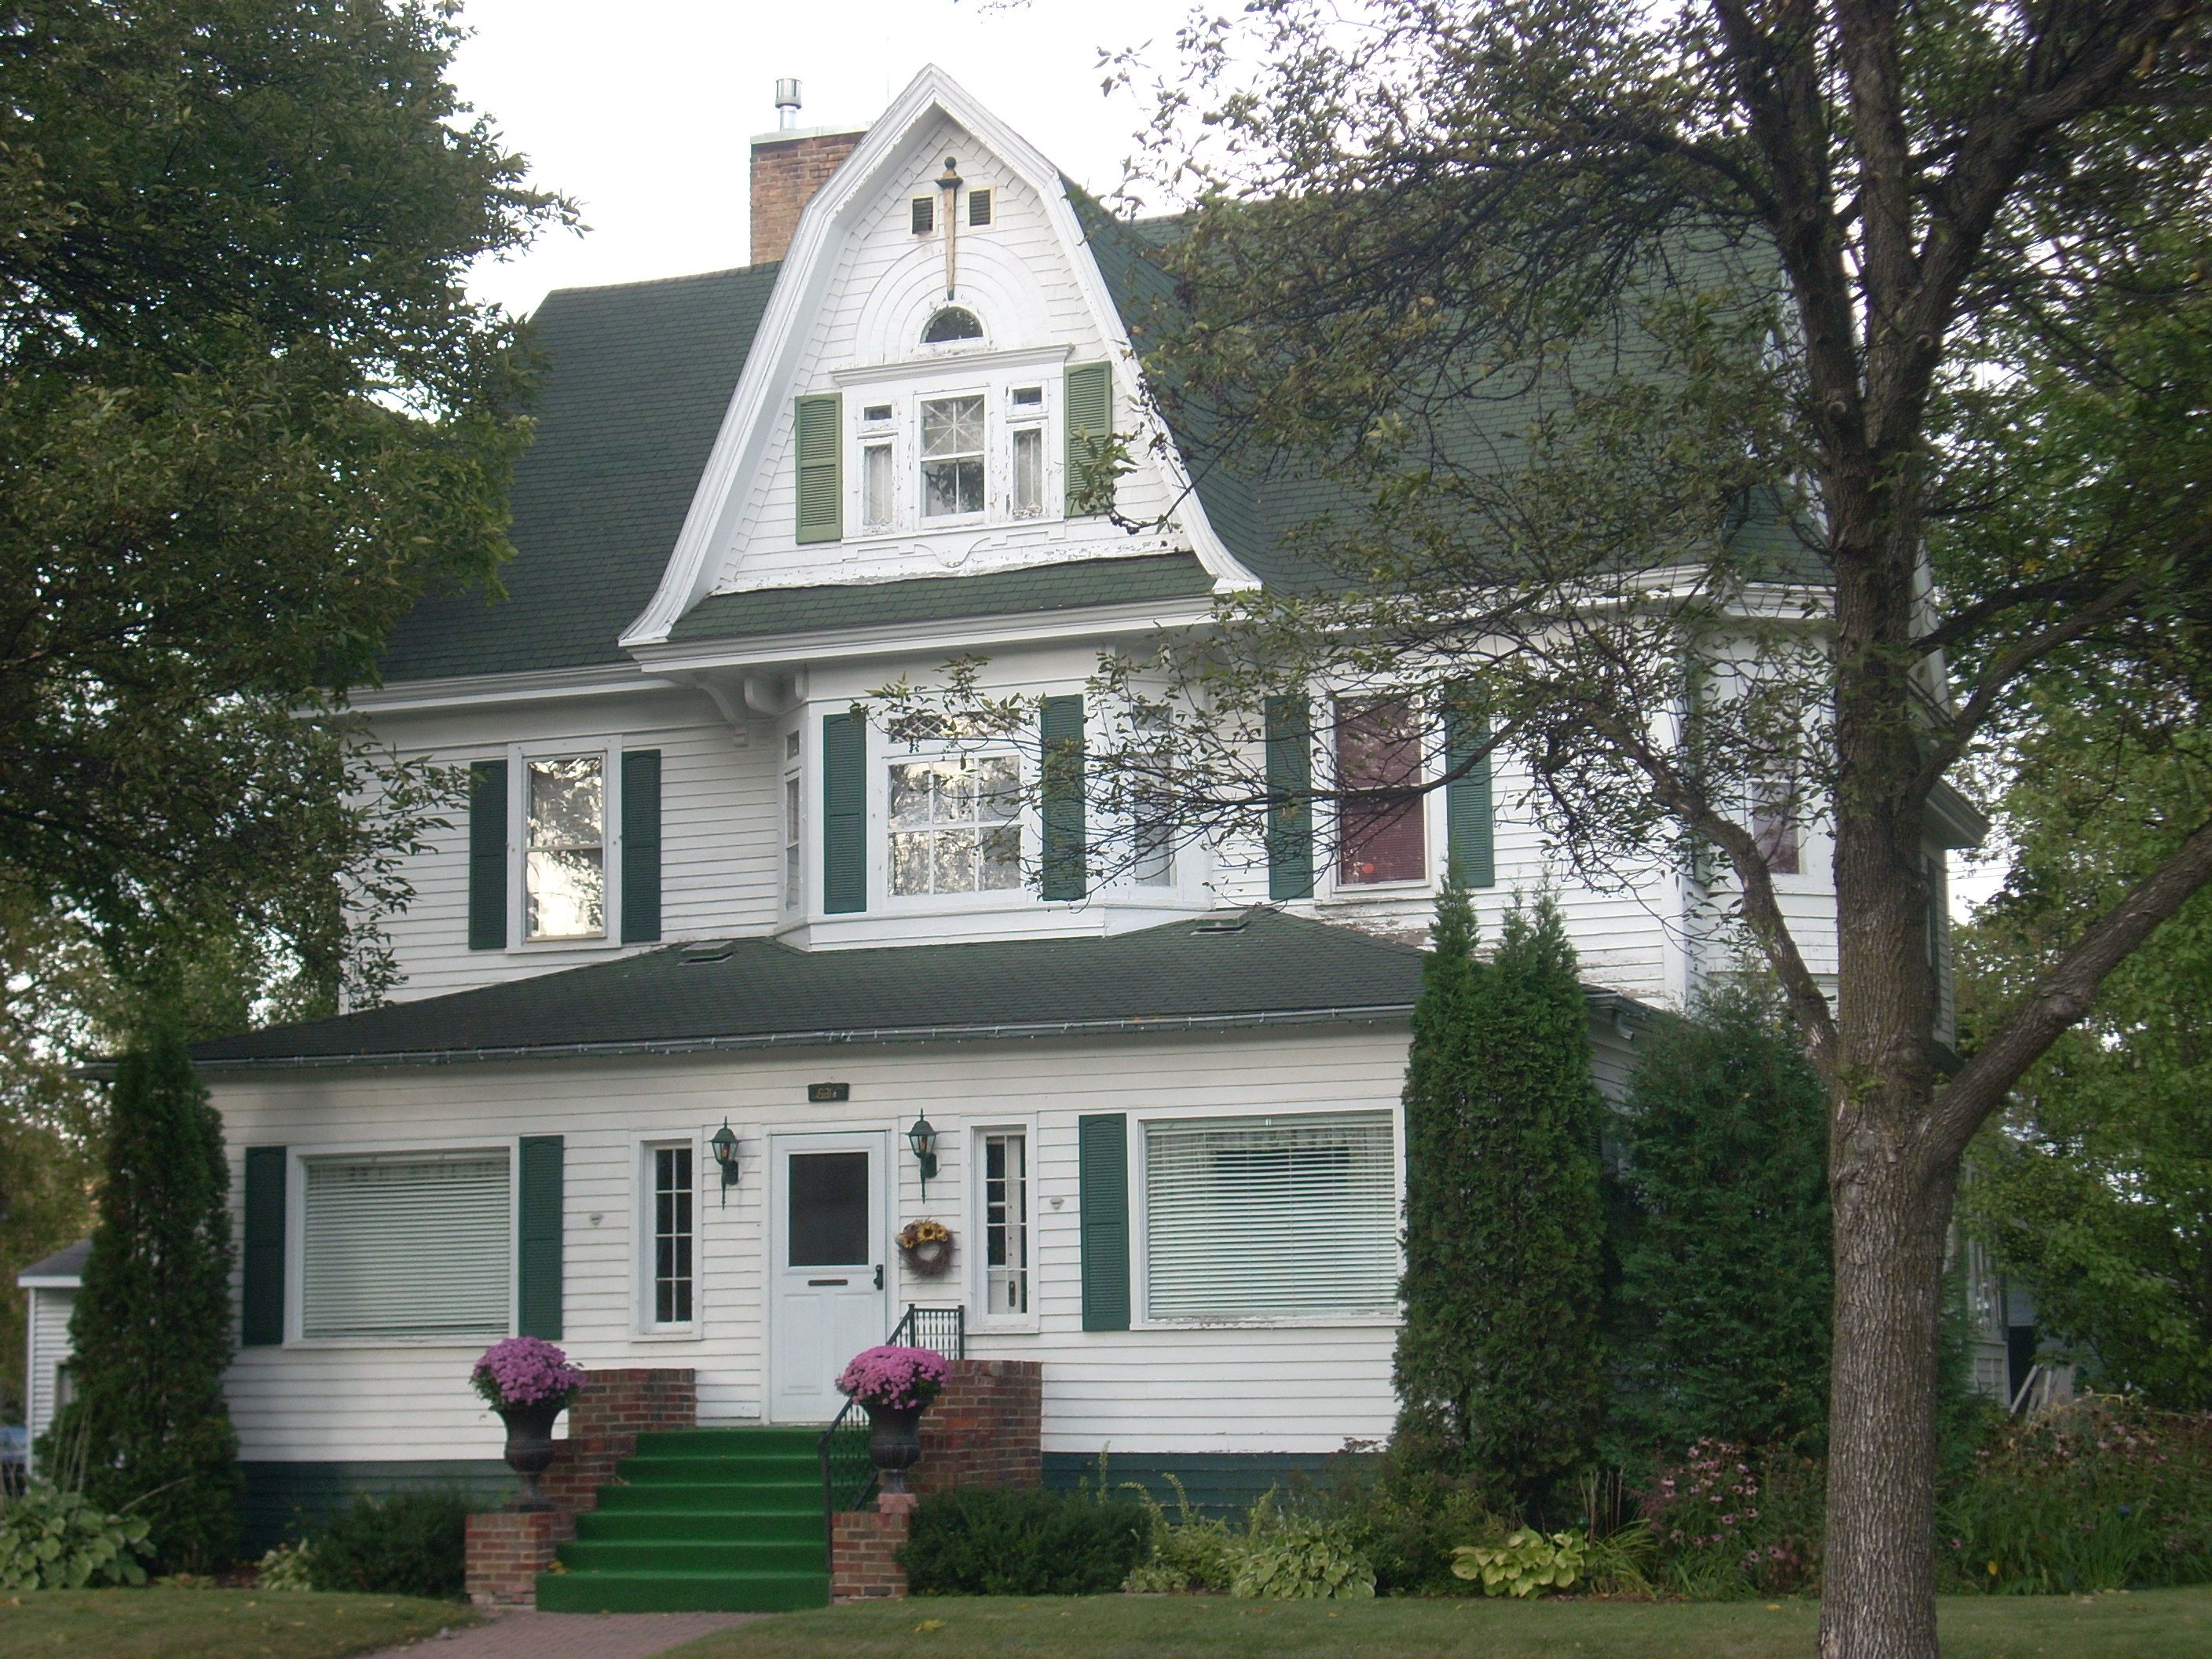 4 Questions To Determine Your Retirement Nest Egg Building Design Old Houses Grand Forks